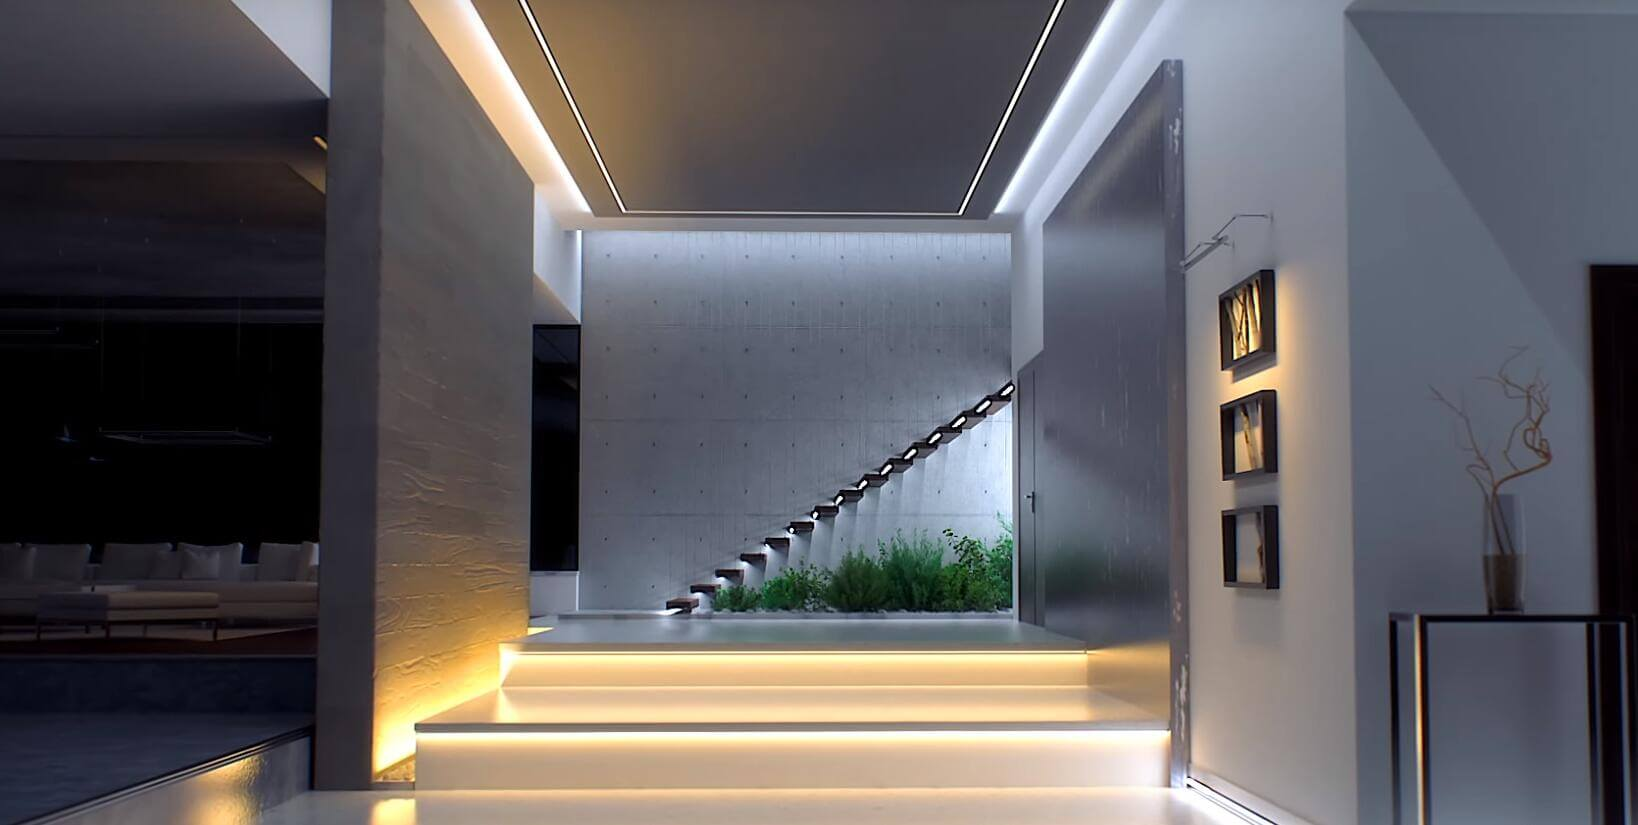 led linear light for stair lightstec 2